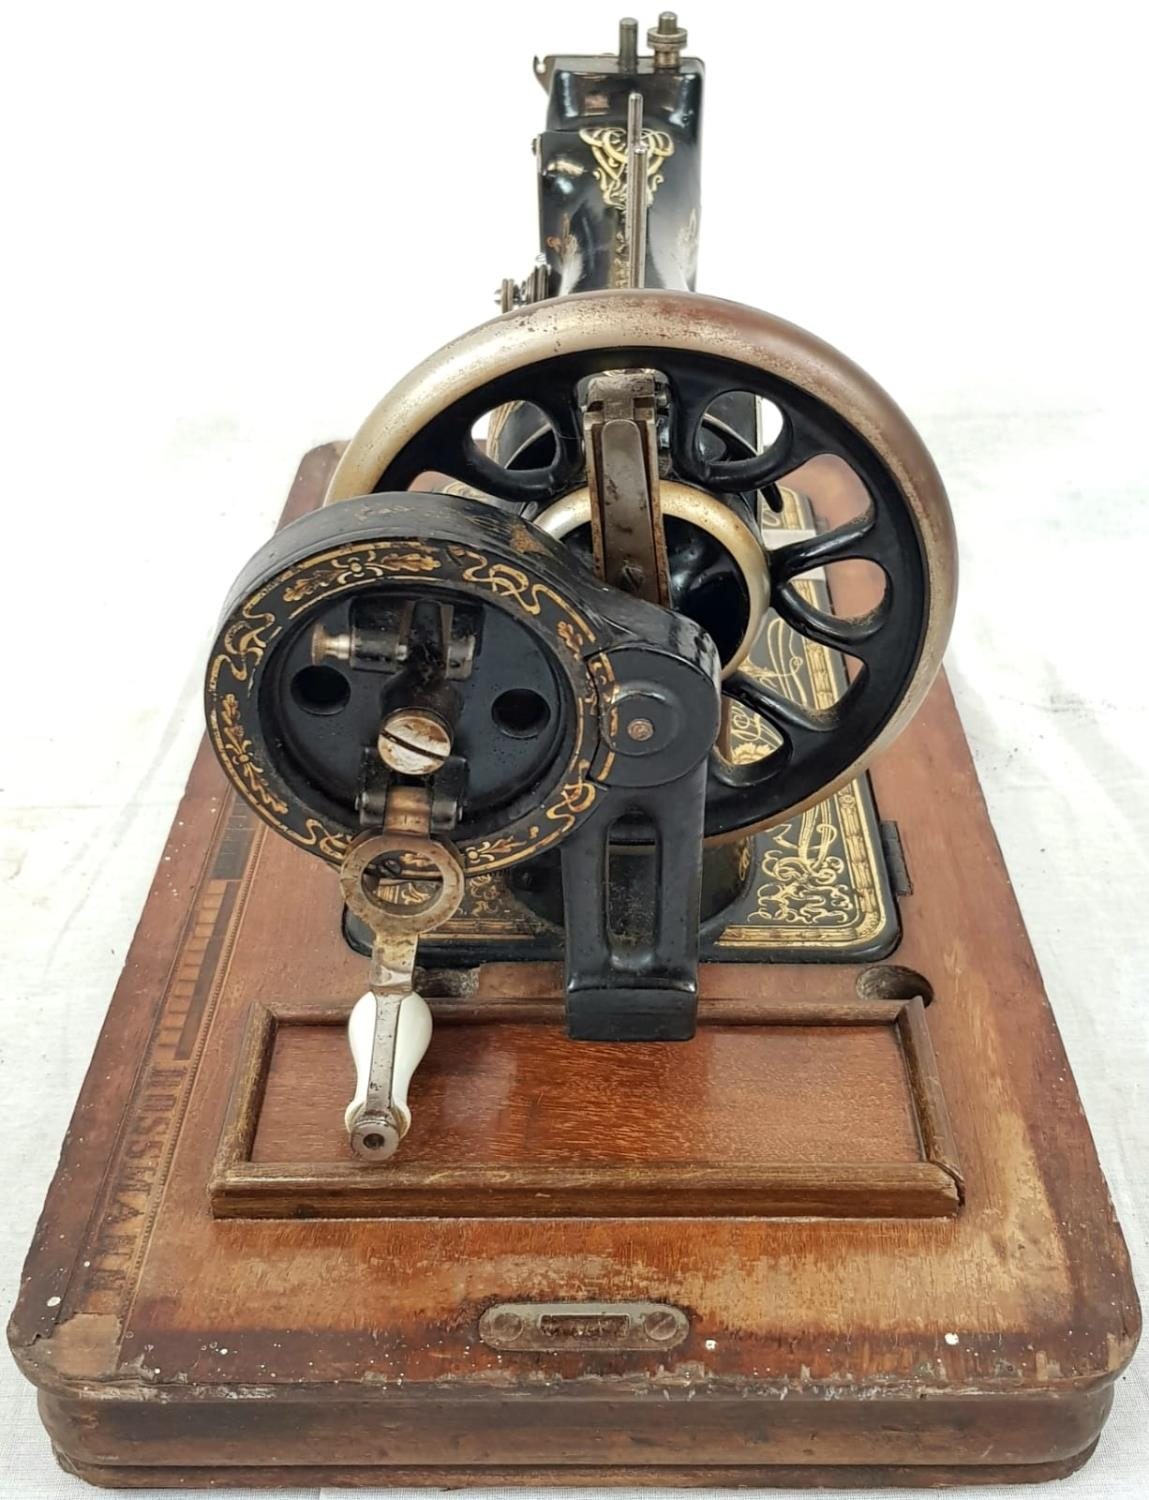 A FINELY DECORATED ANTIQUE SEWING MACHINE IN WOODEN CARRYING CASE MADE BY FRISTER AND ROSSMAN CICA - Image 4 of 5